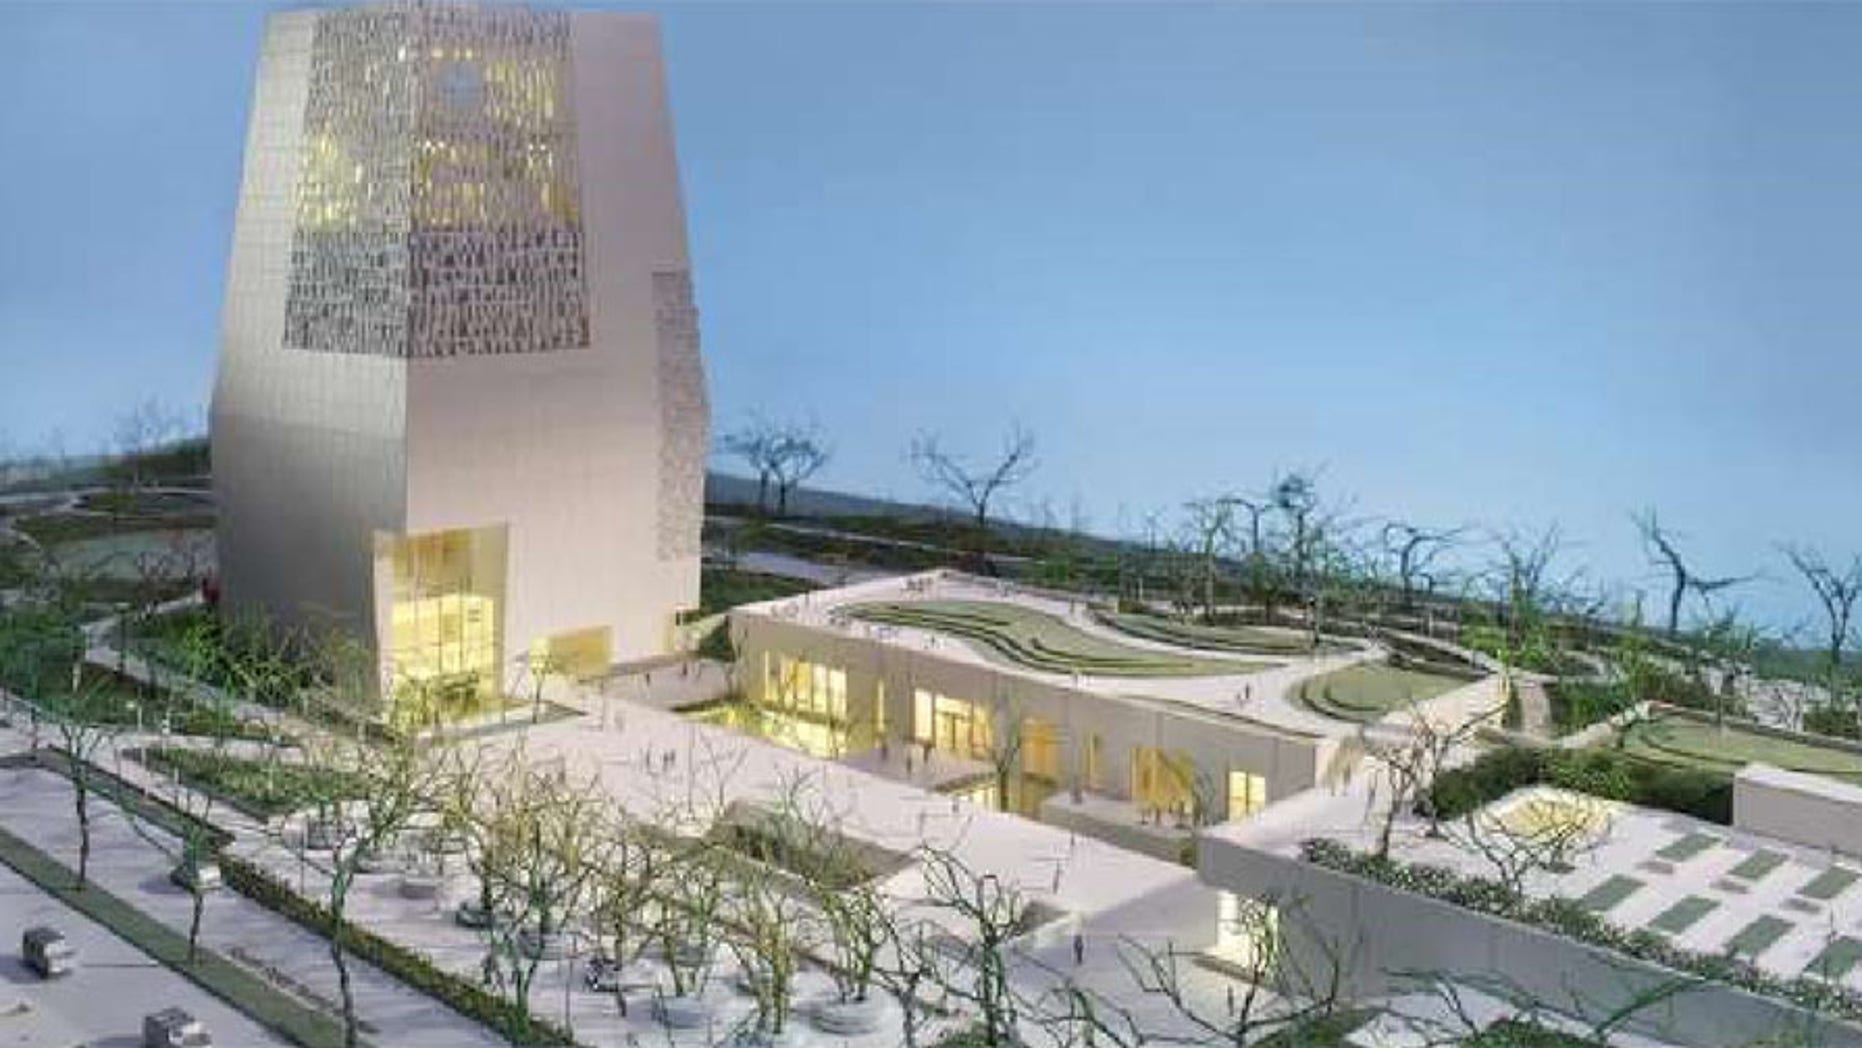 An impression of the Obama Presidential Center's main buildings.